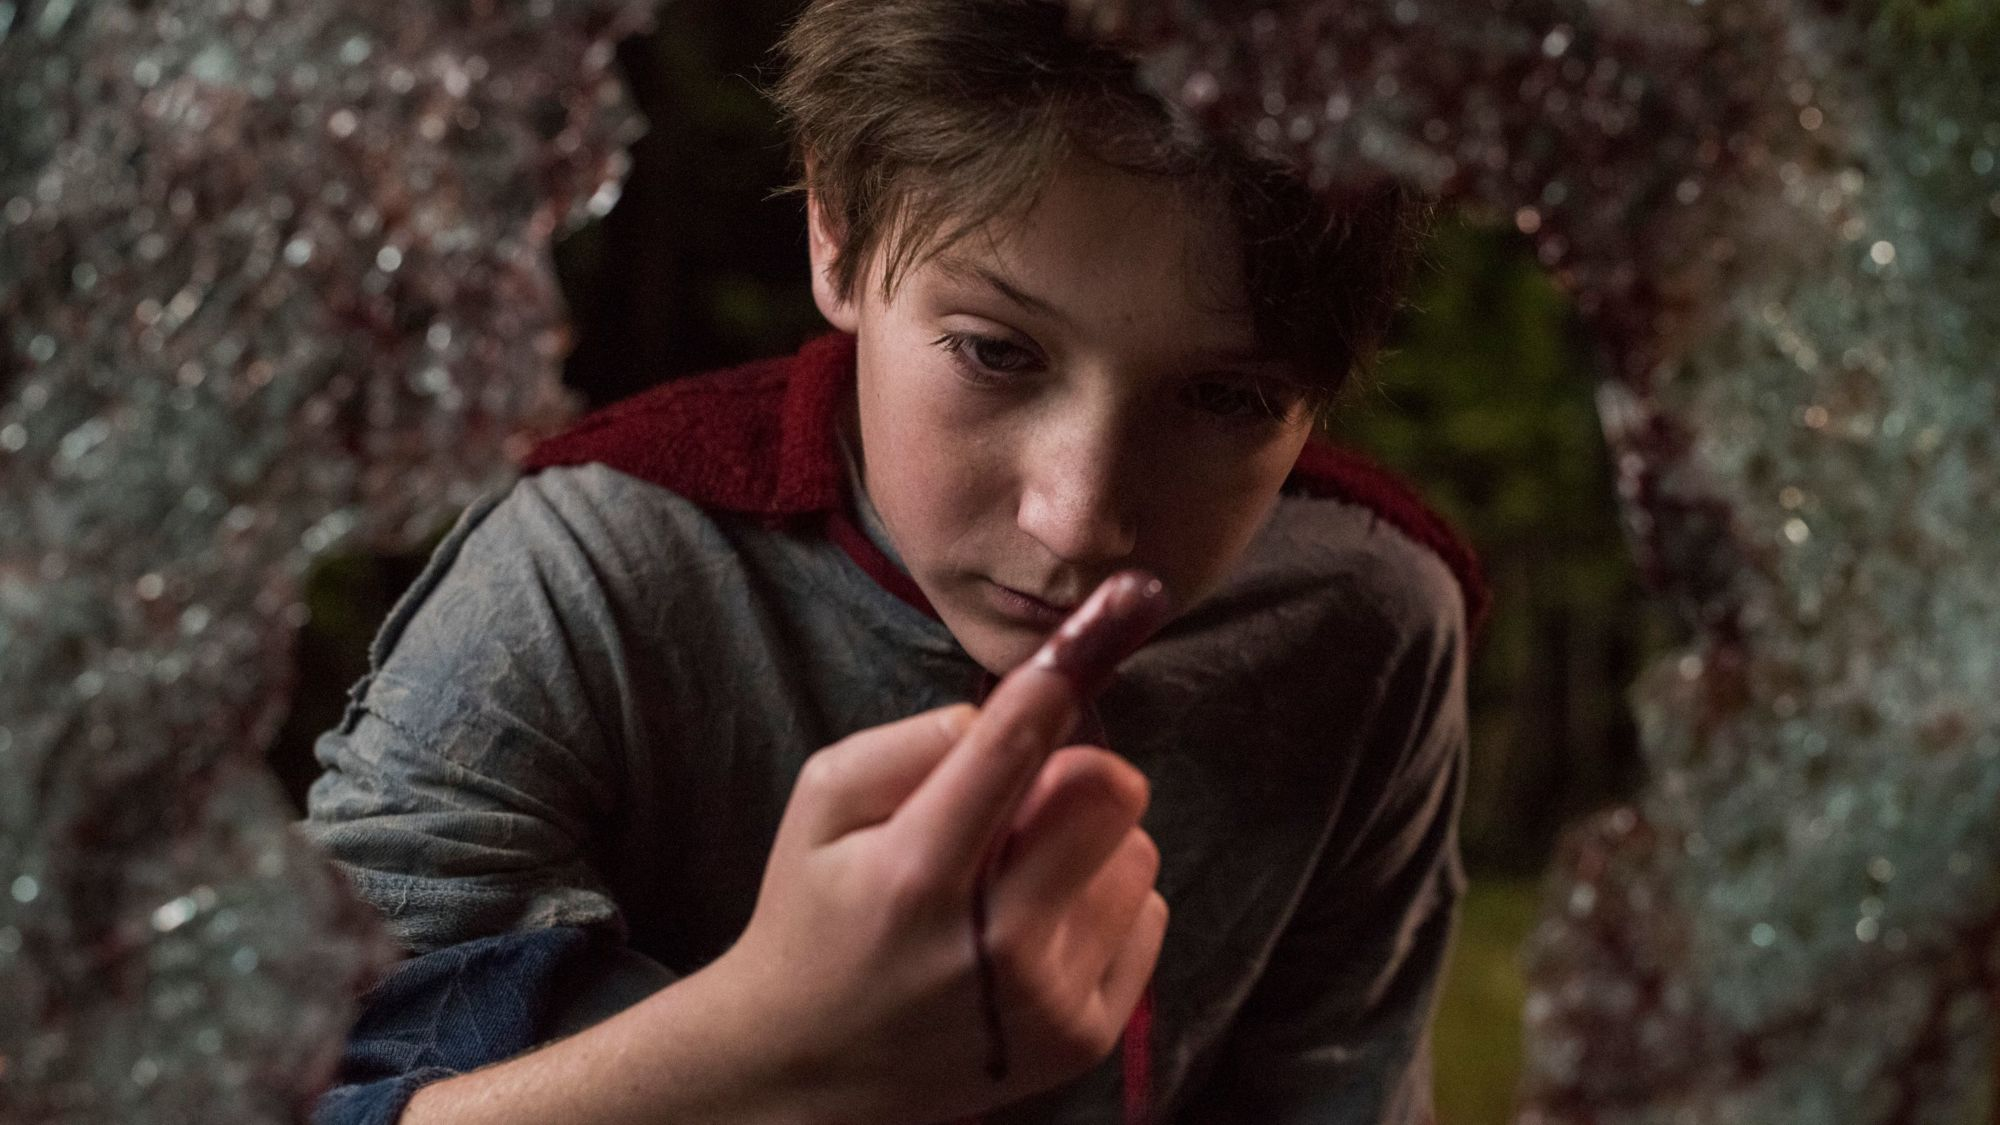 James Gunn's 'Brightburn' Asks: What if Clark Kent Grew Up Evil? [Review]